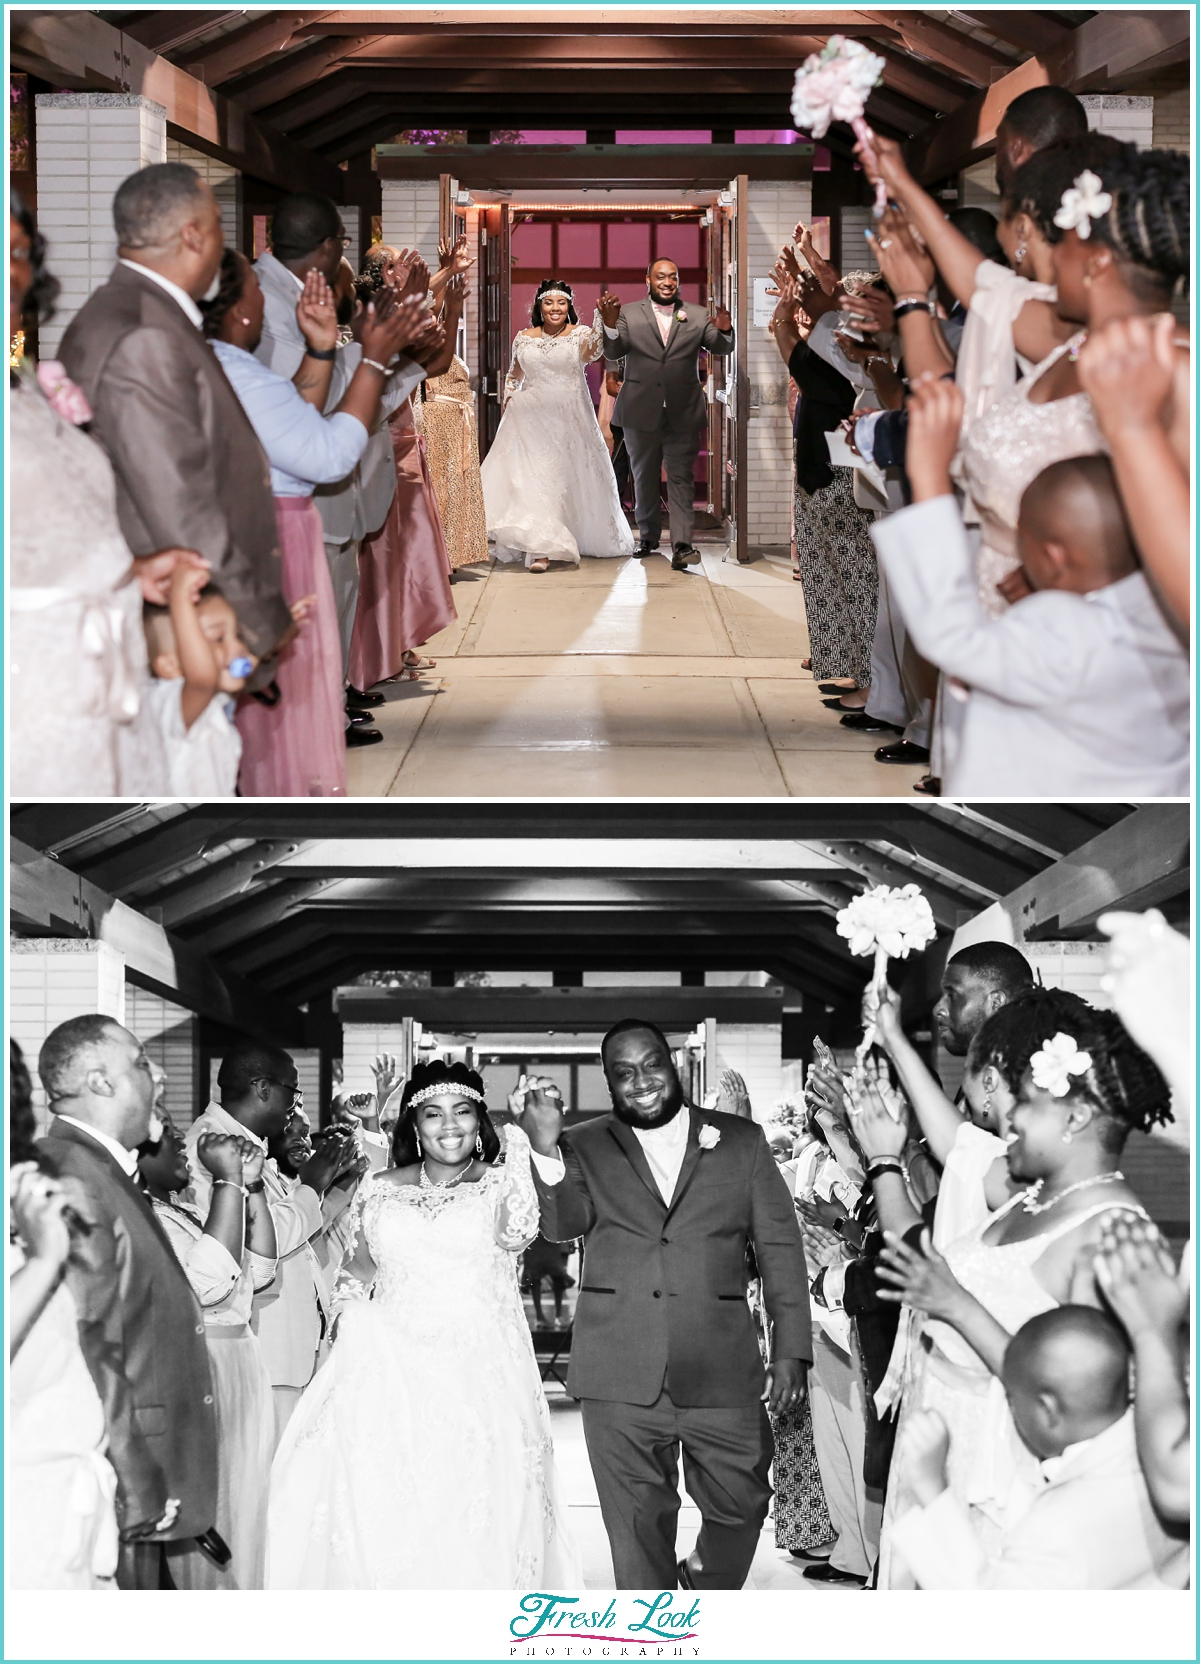 grand exit from wedding reception